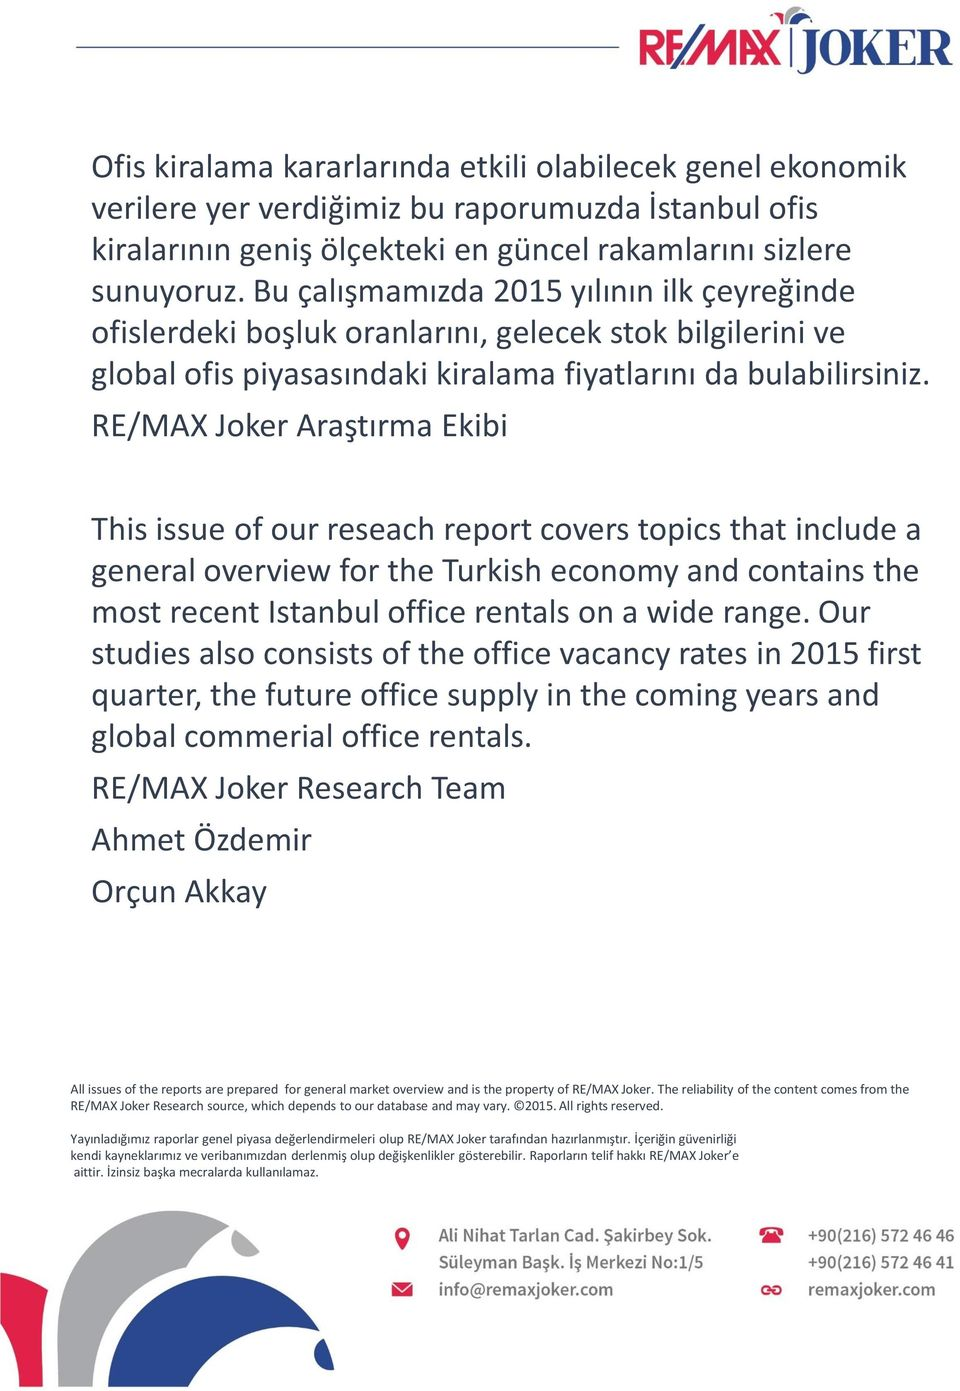 RE/MAX Joker Araştırma Ekibi This issue of our reseach report covers topics that include a general overview for the Turkish economy and contains the most recent Istanbul office rentals on a wide